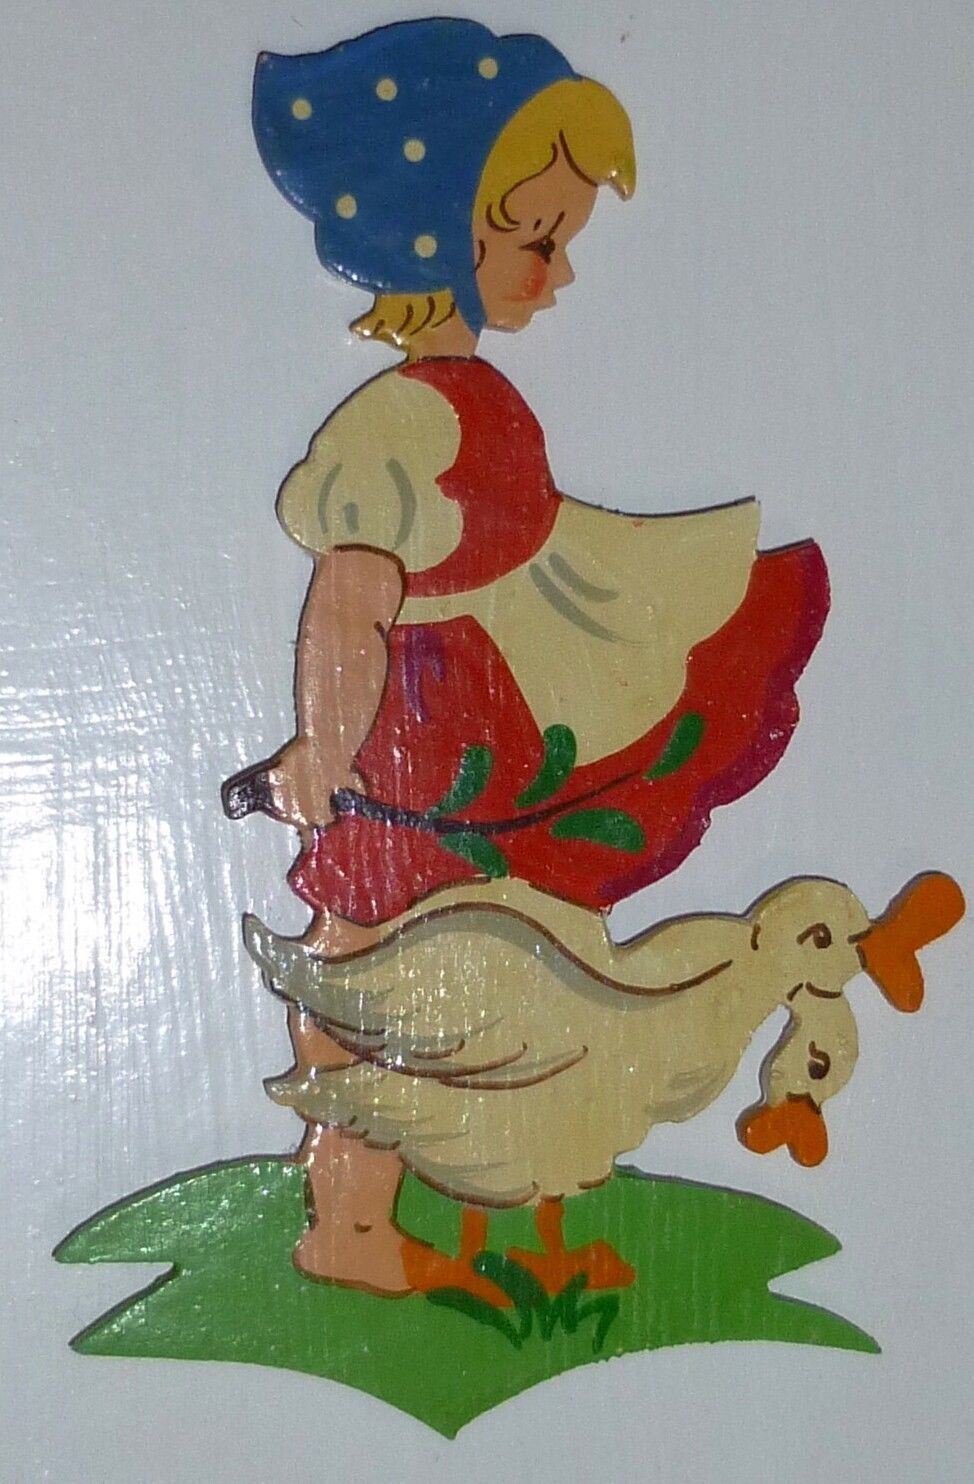 2 VINTAGE 1950s West German Folk Art Wood Fretwork Fairy Tale Female Figures EUC in Collectibles, Decorative Collectibles, Wall Hangings, Mirrors | eBay